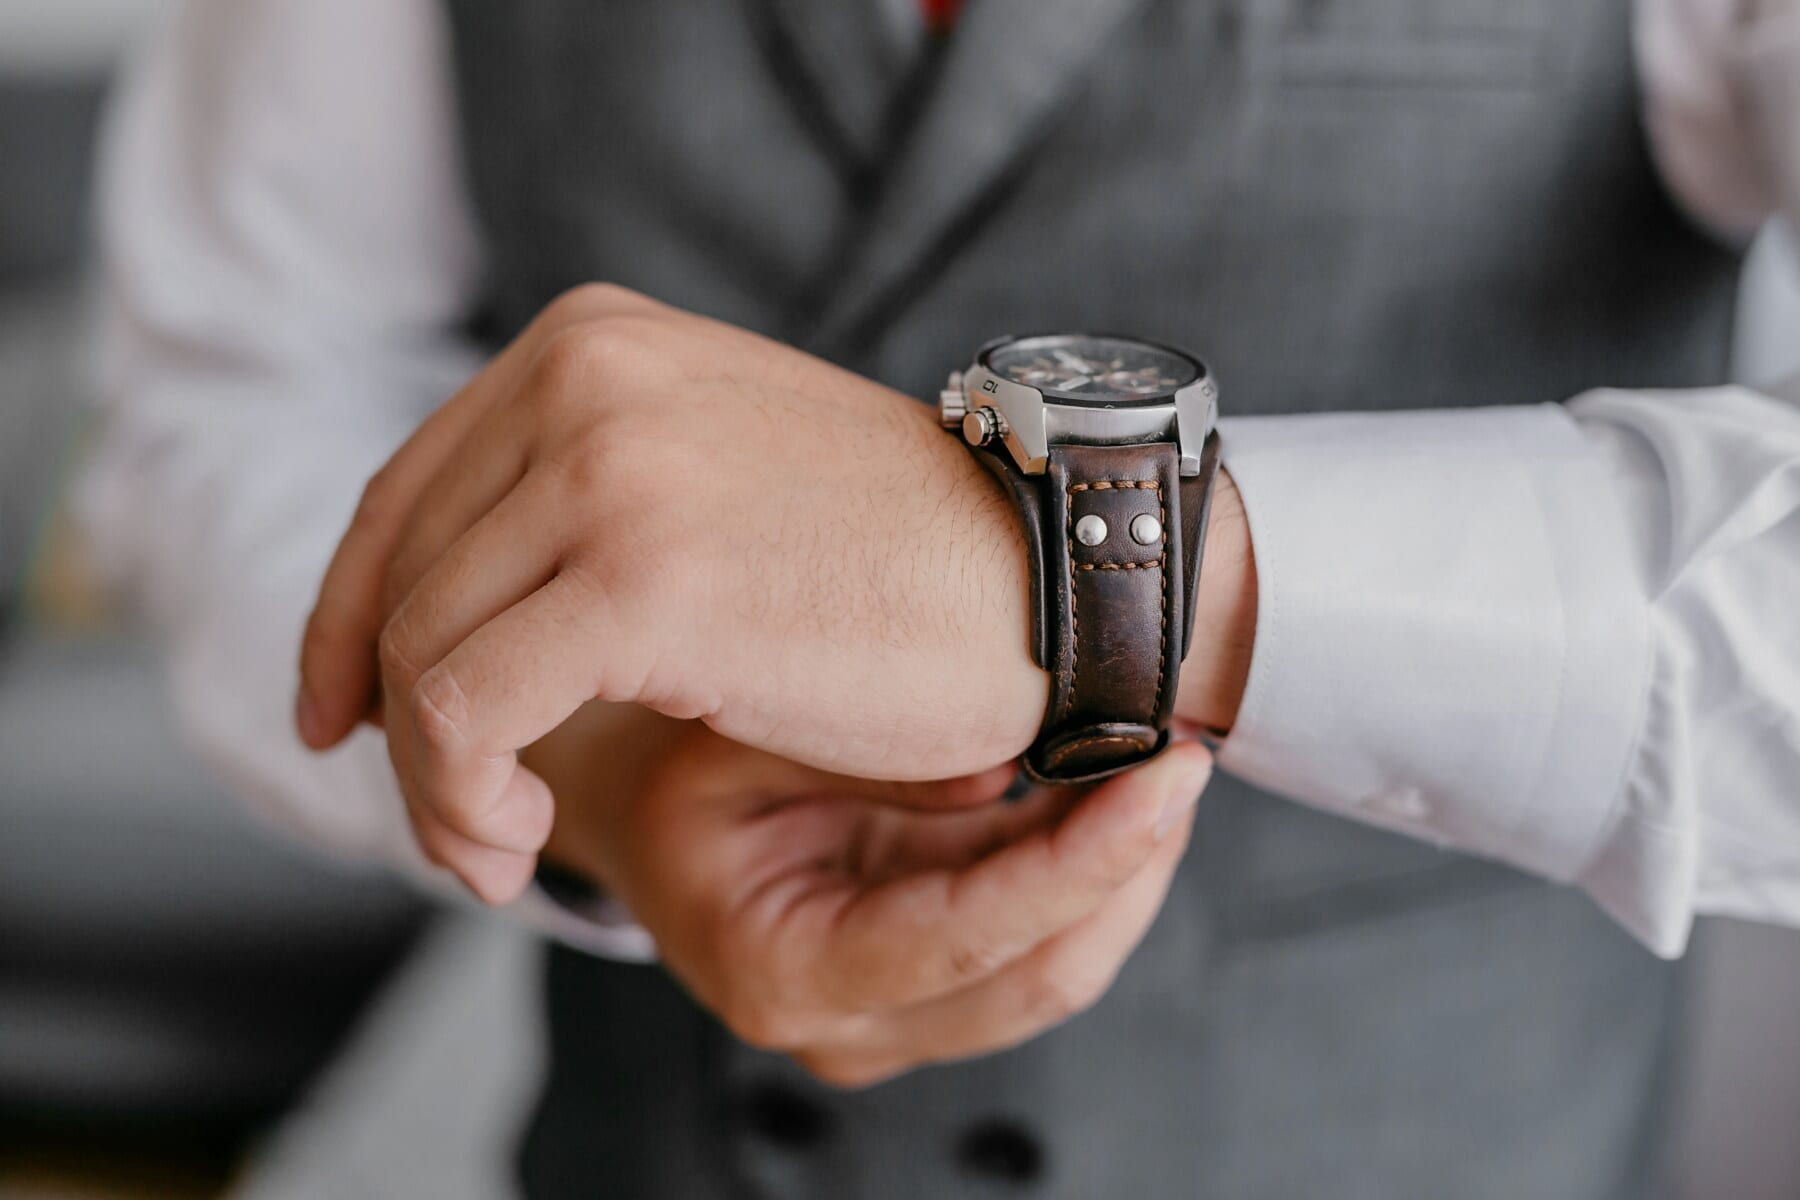 wristwatch, fancy, expensive, clock, leather, brown, hand, man, touch, business